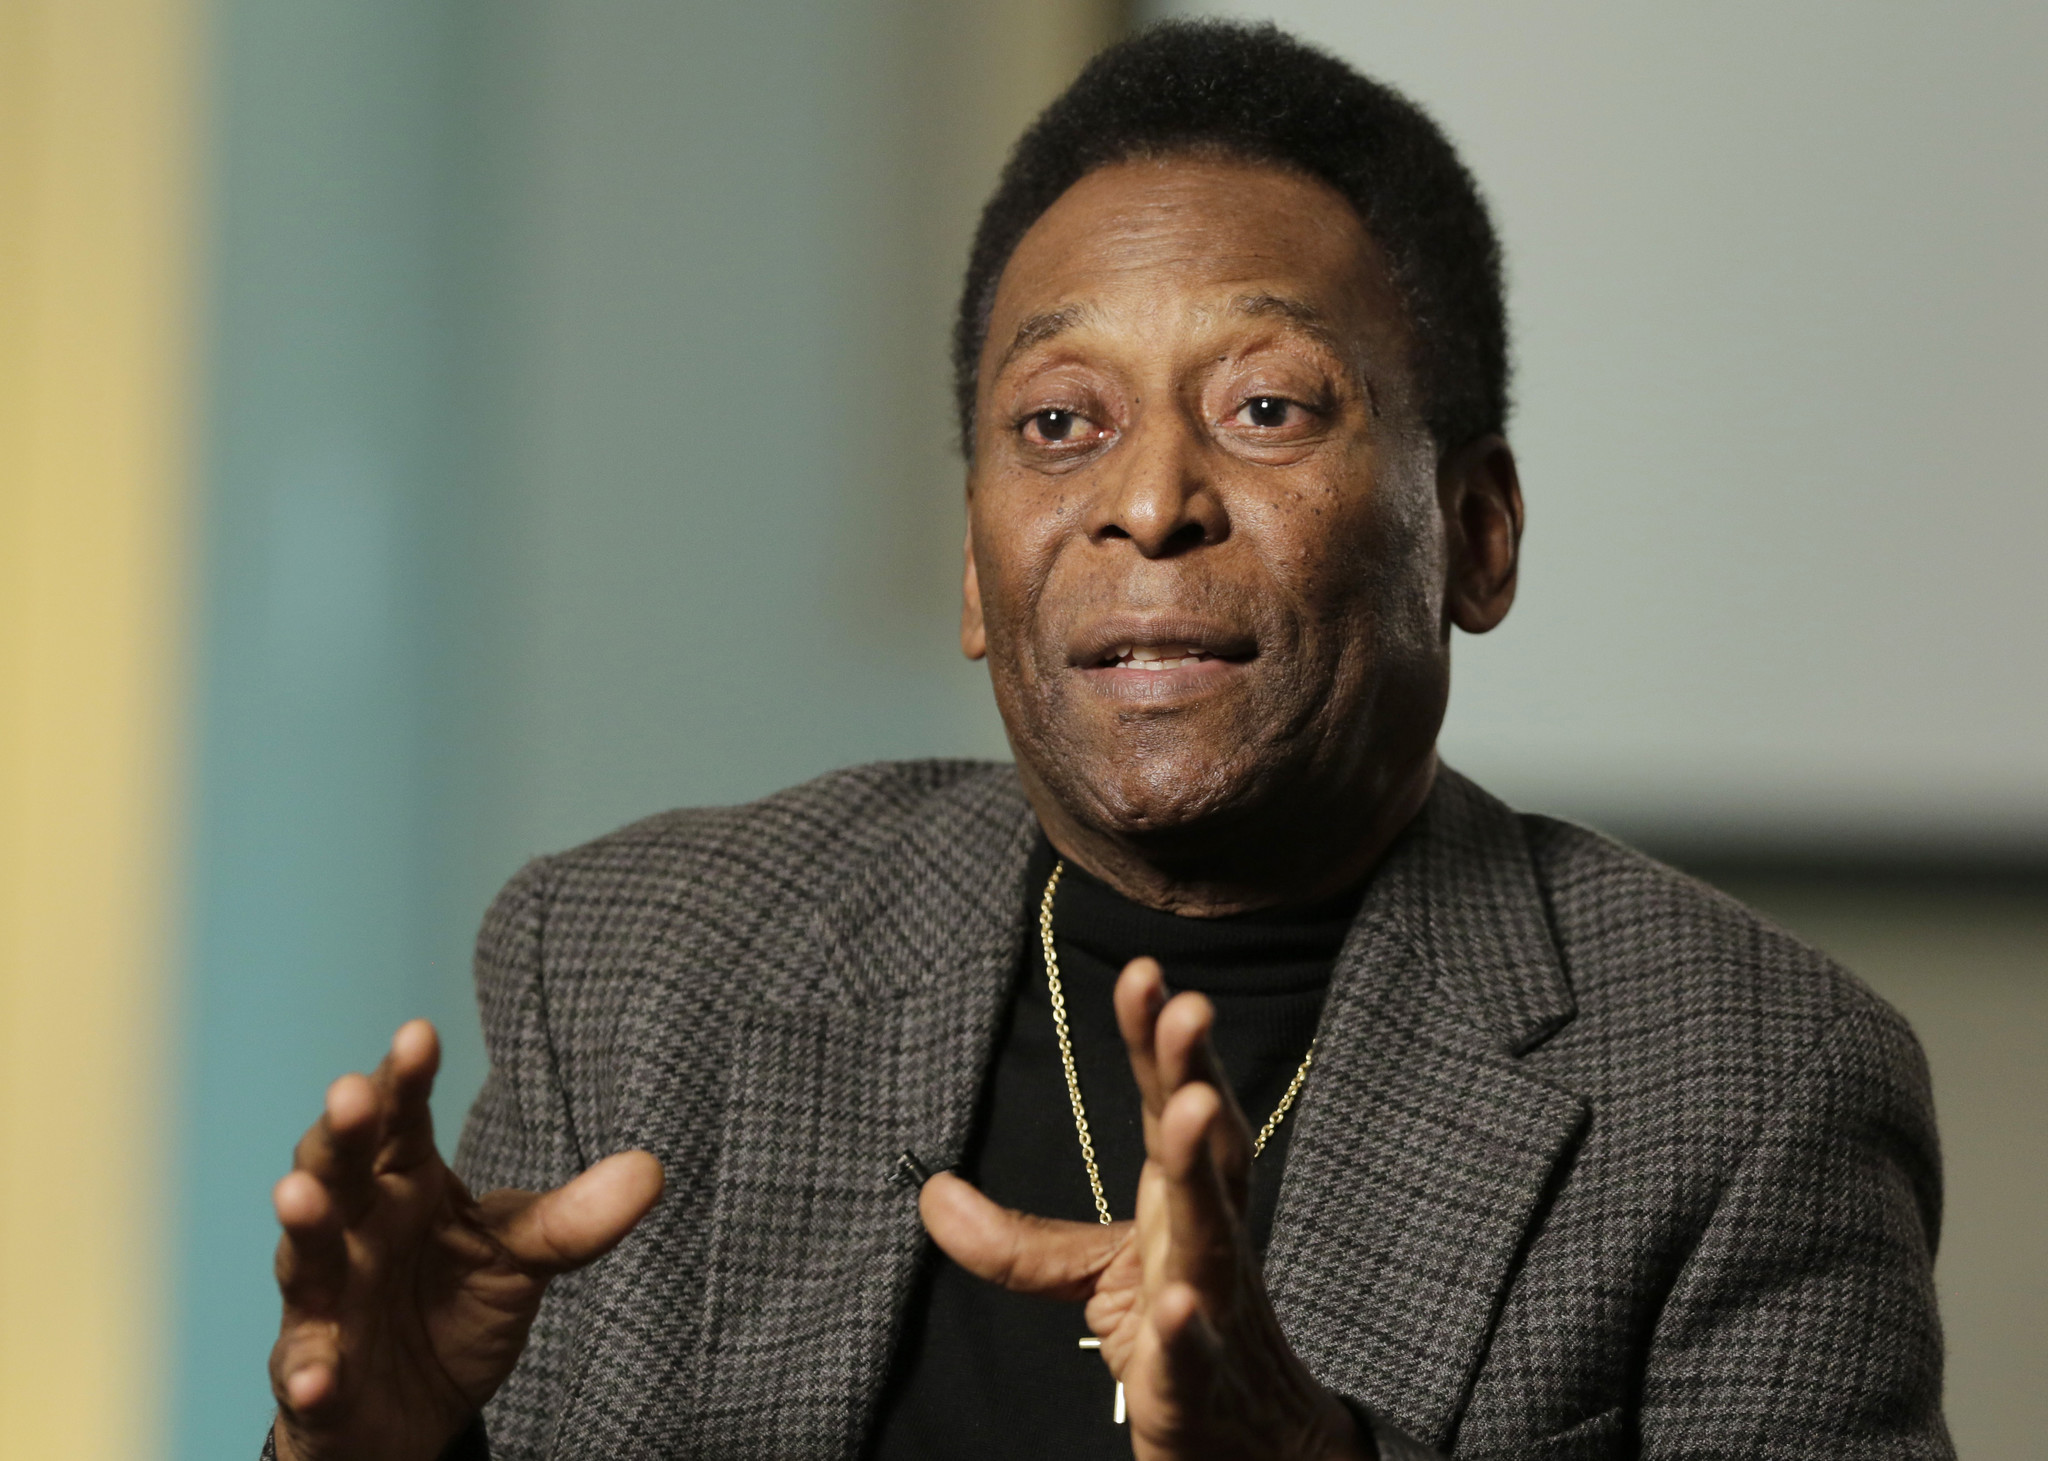 Ailing soccer legend Pele can't leave his house without help